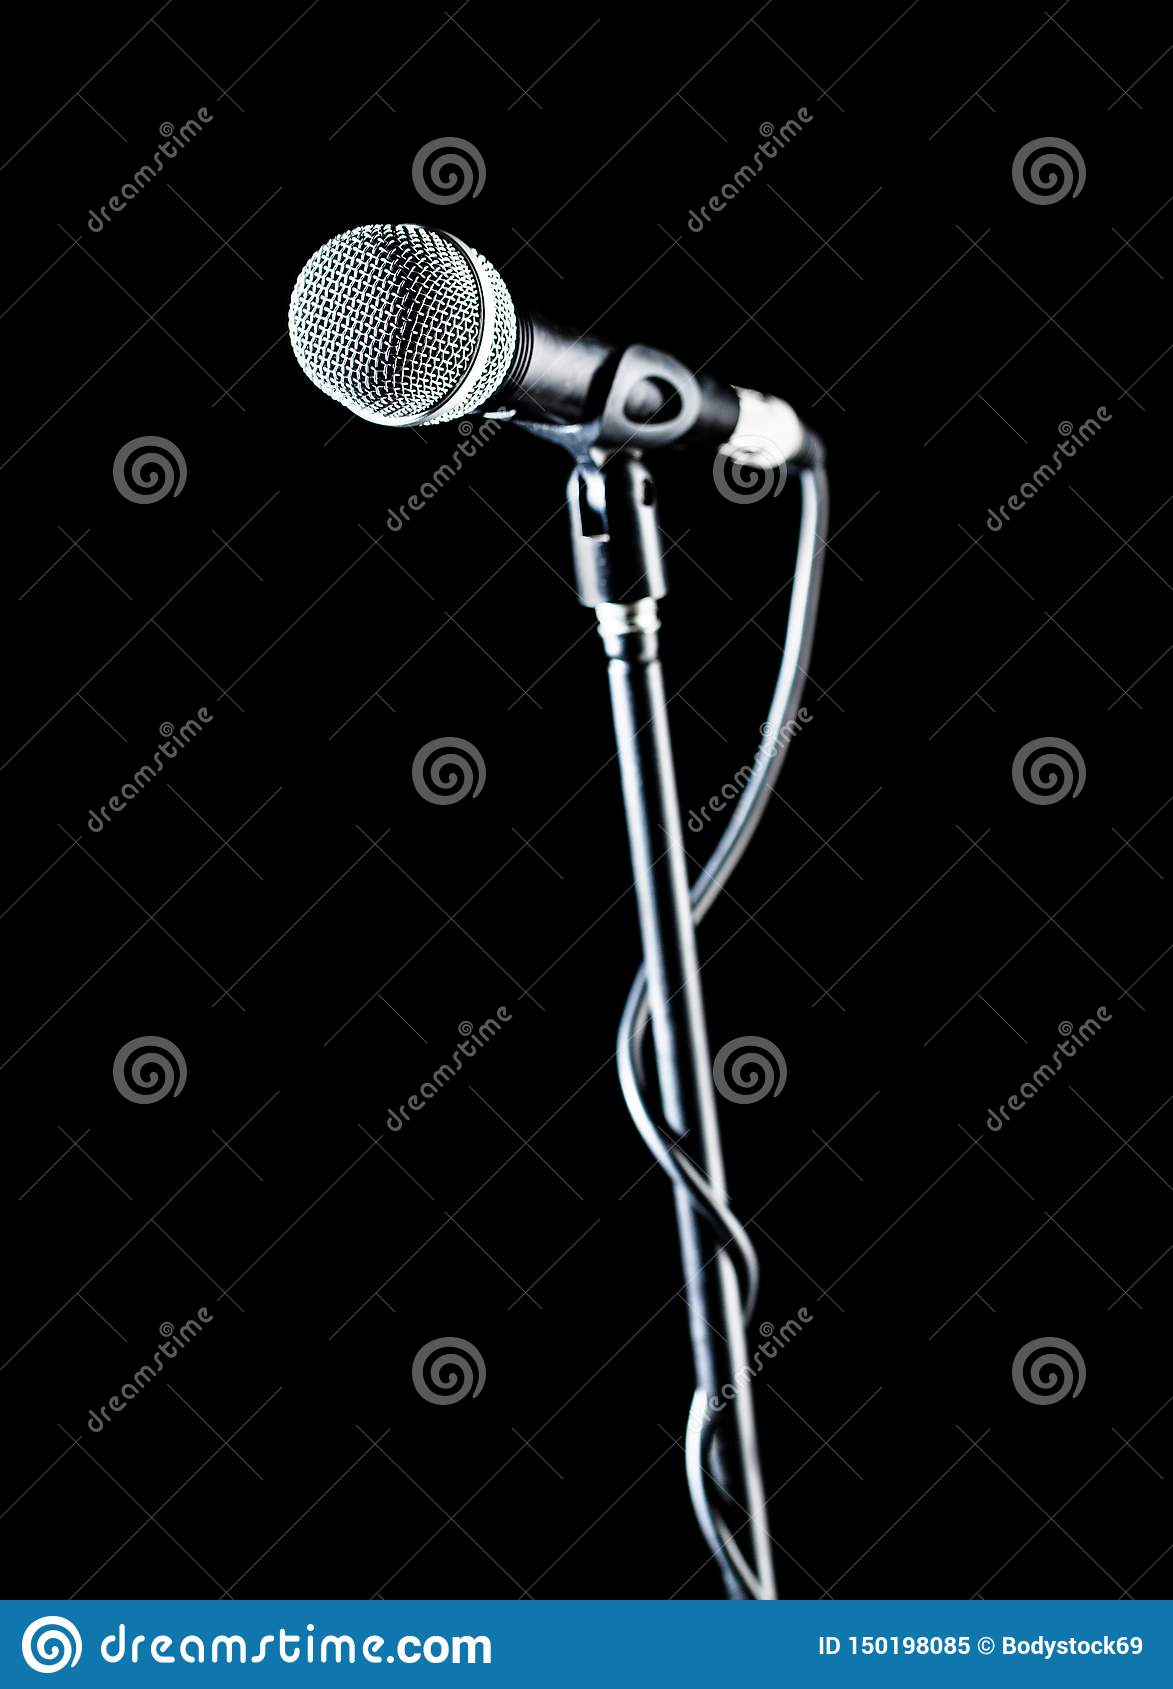 Vocal audio mic on a bleck background. Audio equipment. Karaoke concert, sing sound. Singer in karaokes, microphones